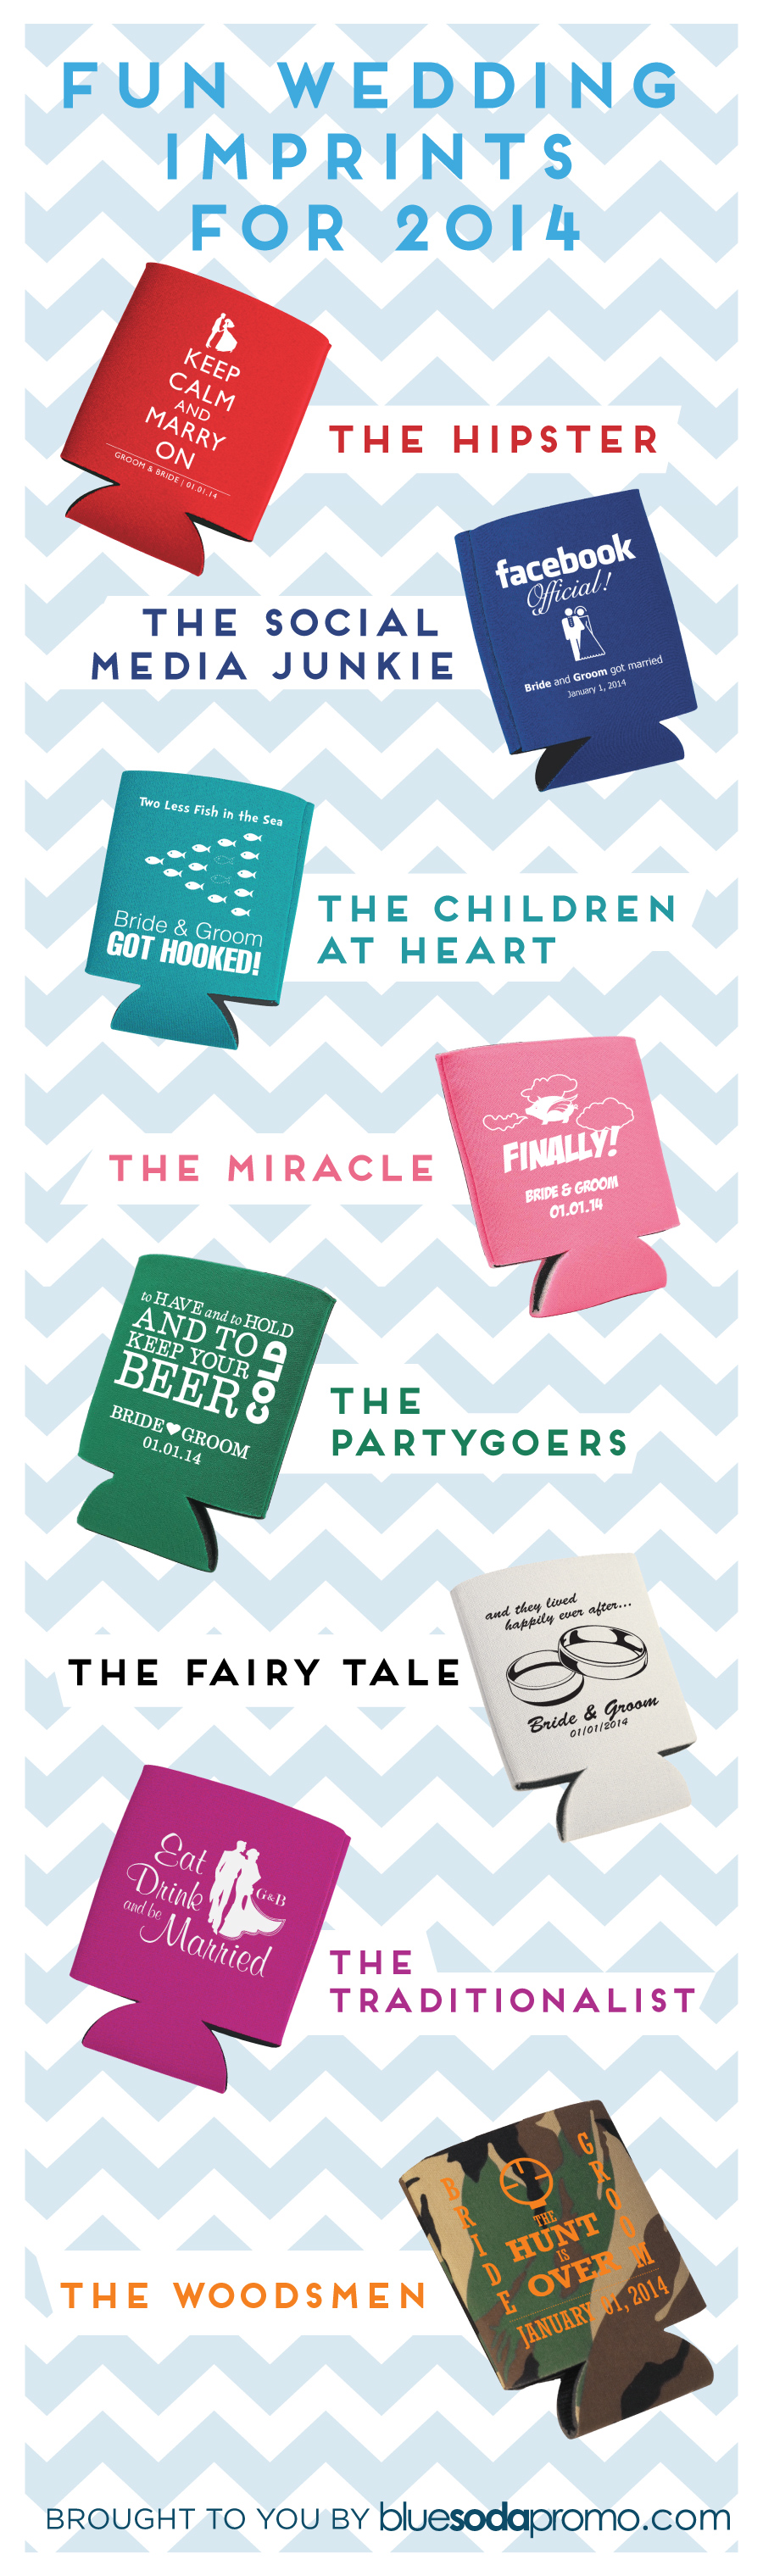 8 Fun Wedding Favor Imprints for 2014 - Blue Soda Promo Blog